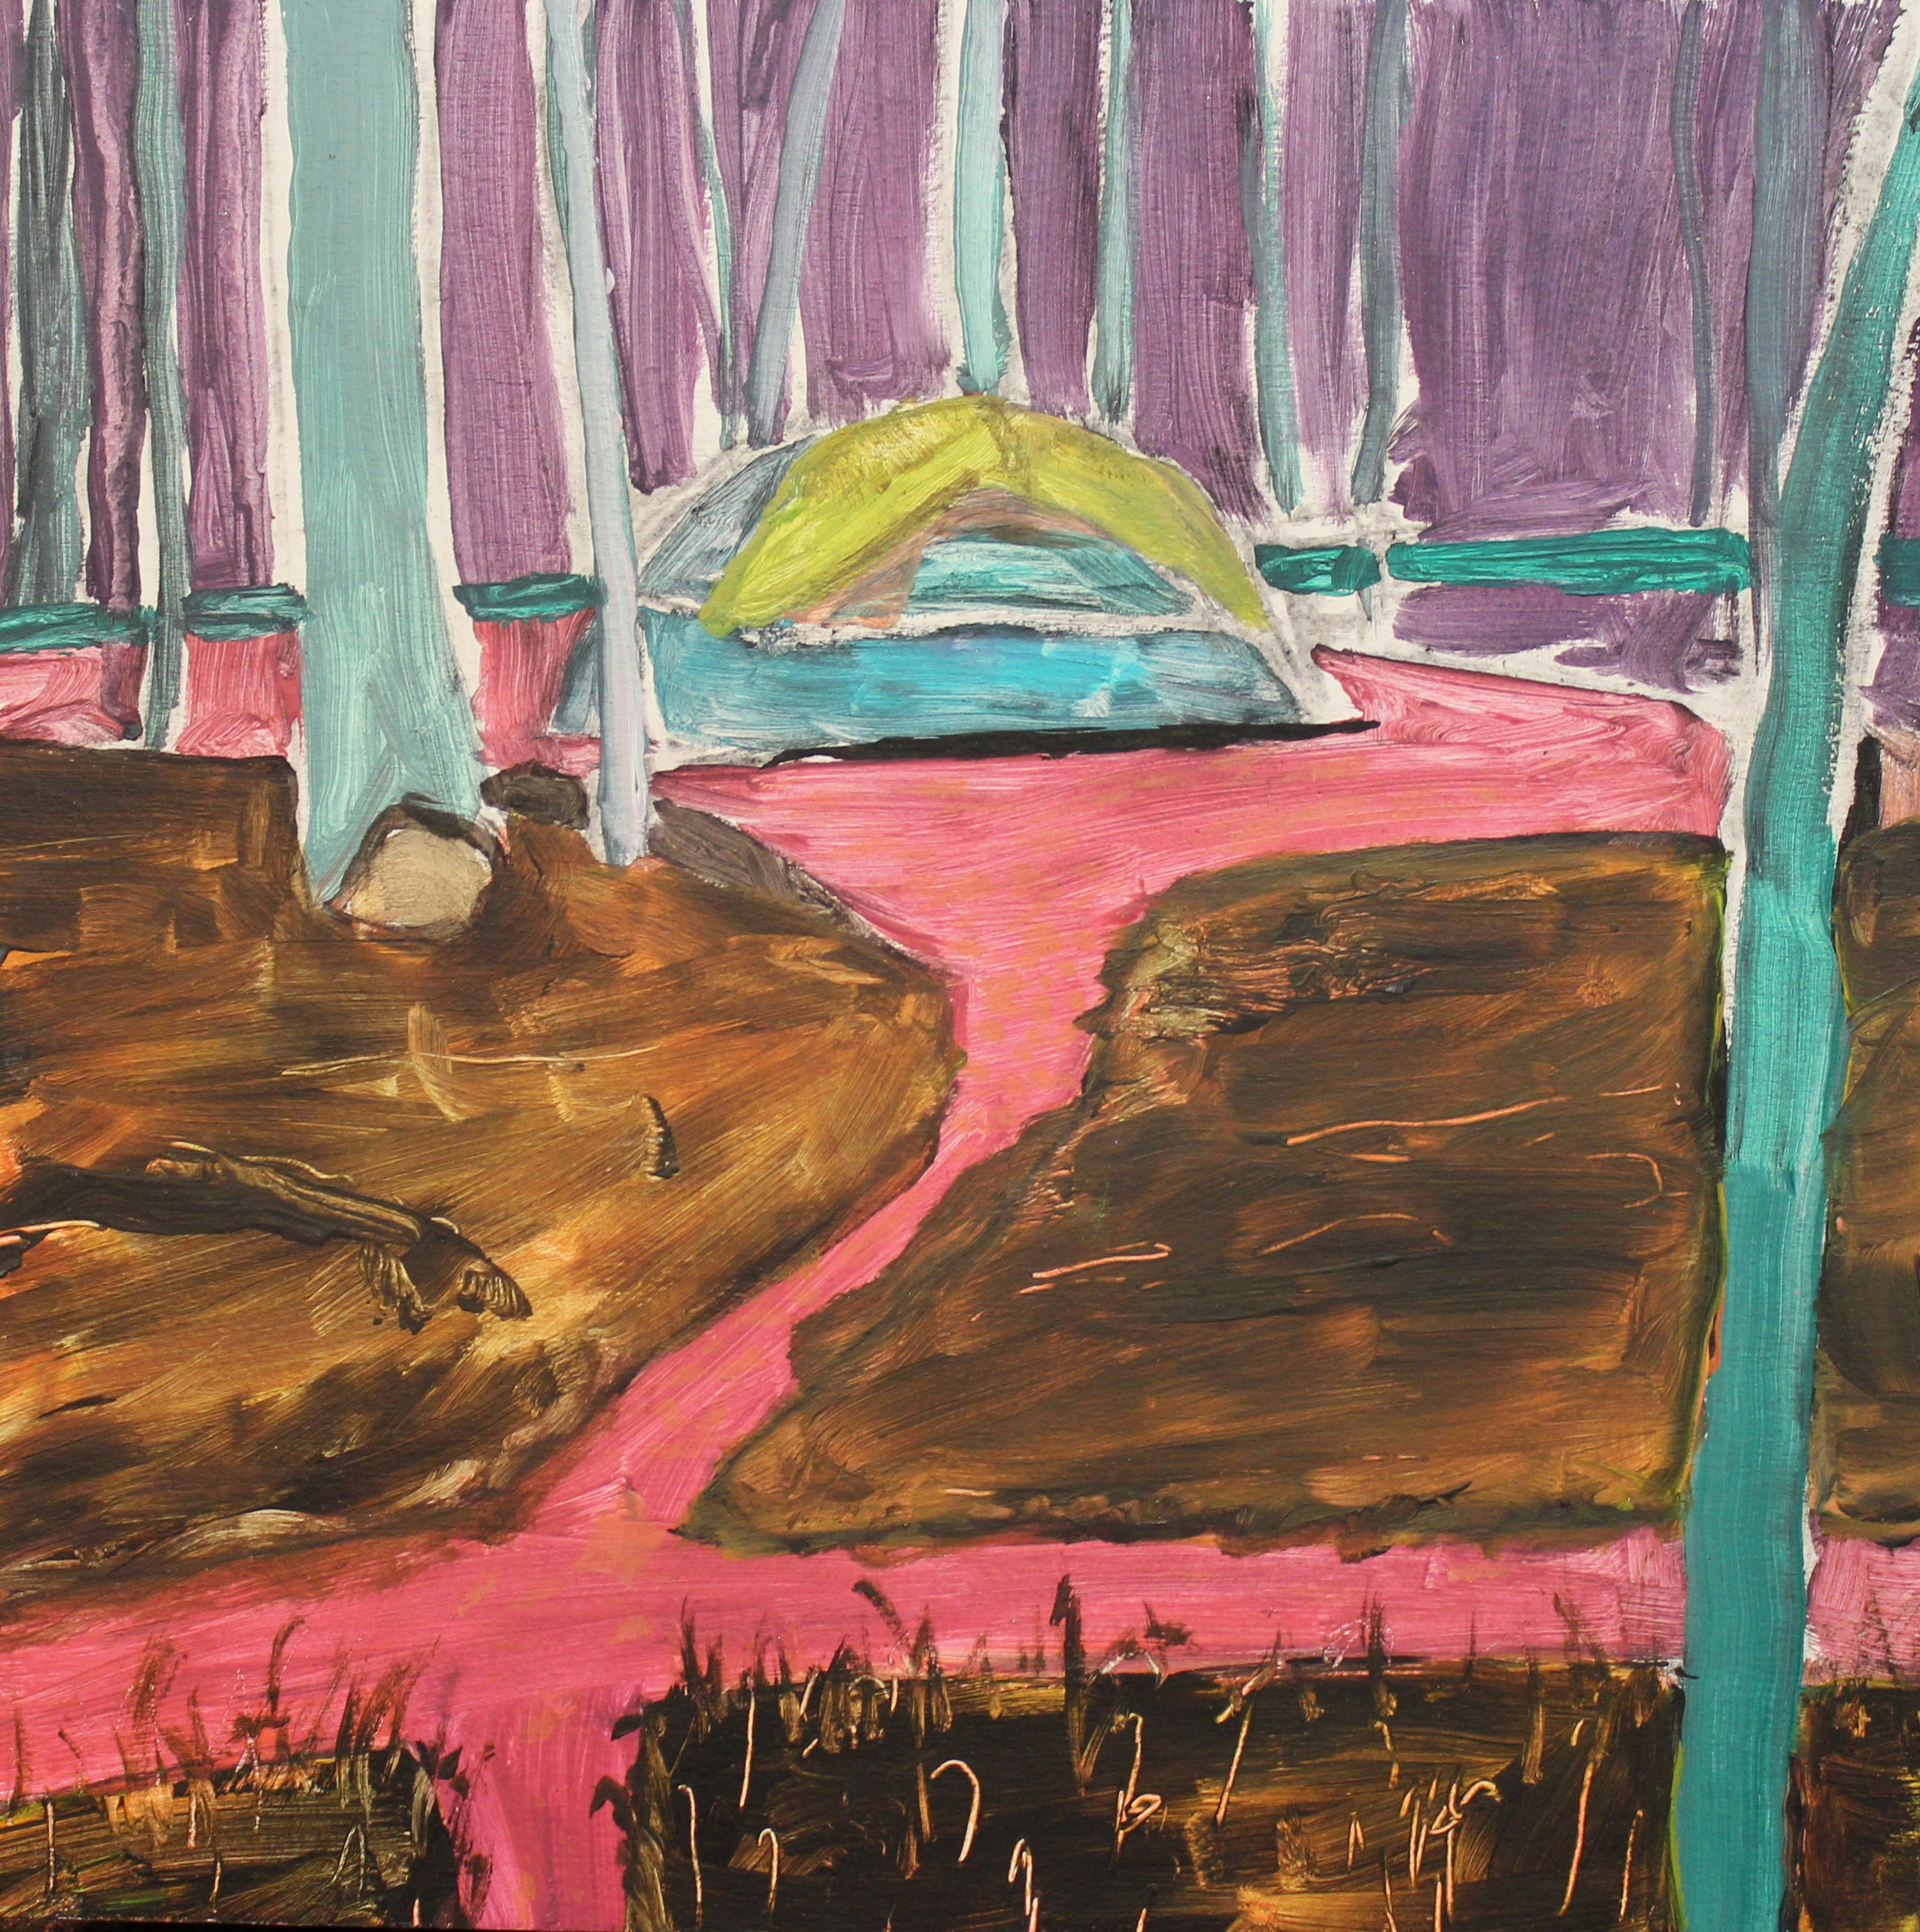 "Tent  acrylic on wood  10"" x 10""  2018   Available through The Red Arrow Gallery, Nashville, TN"